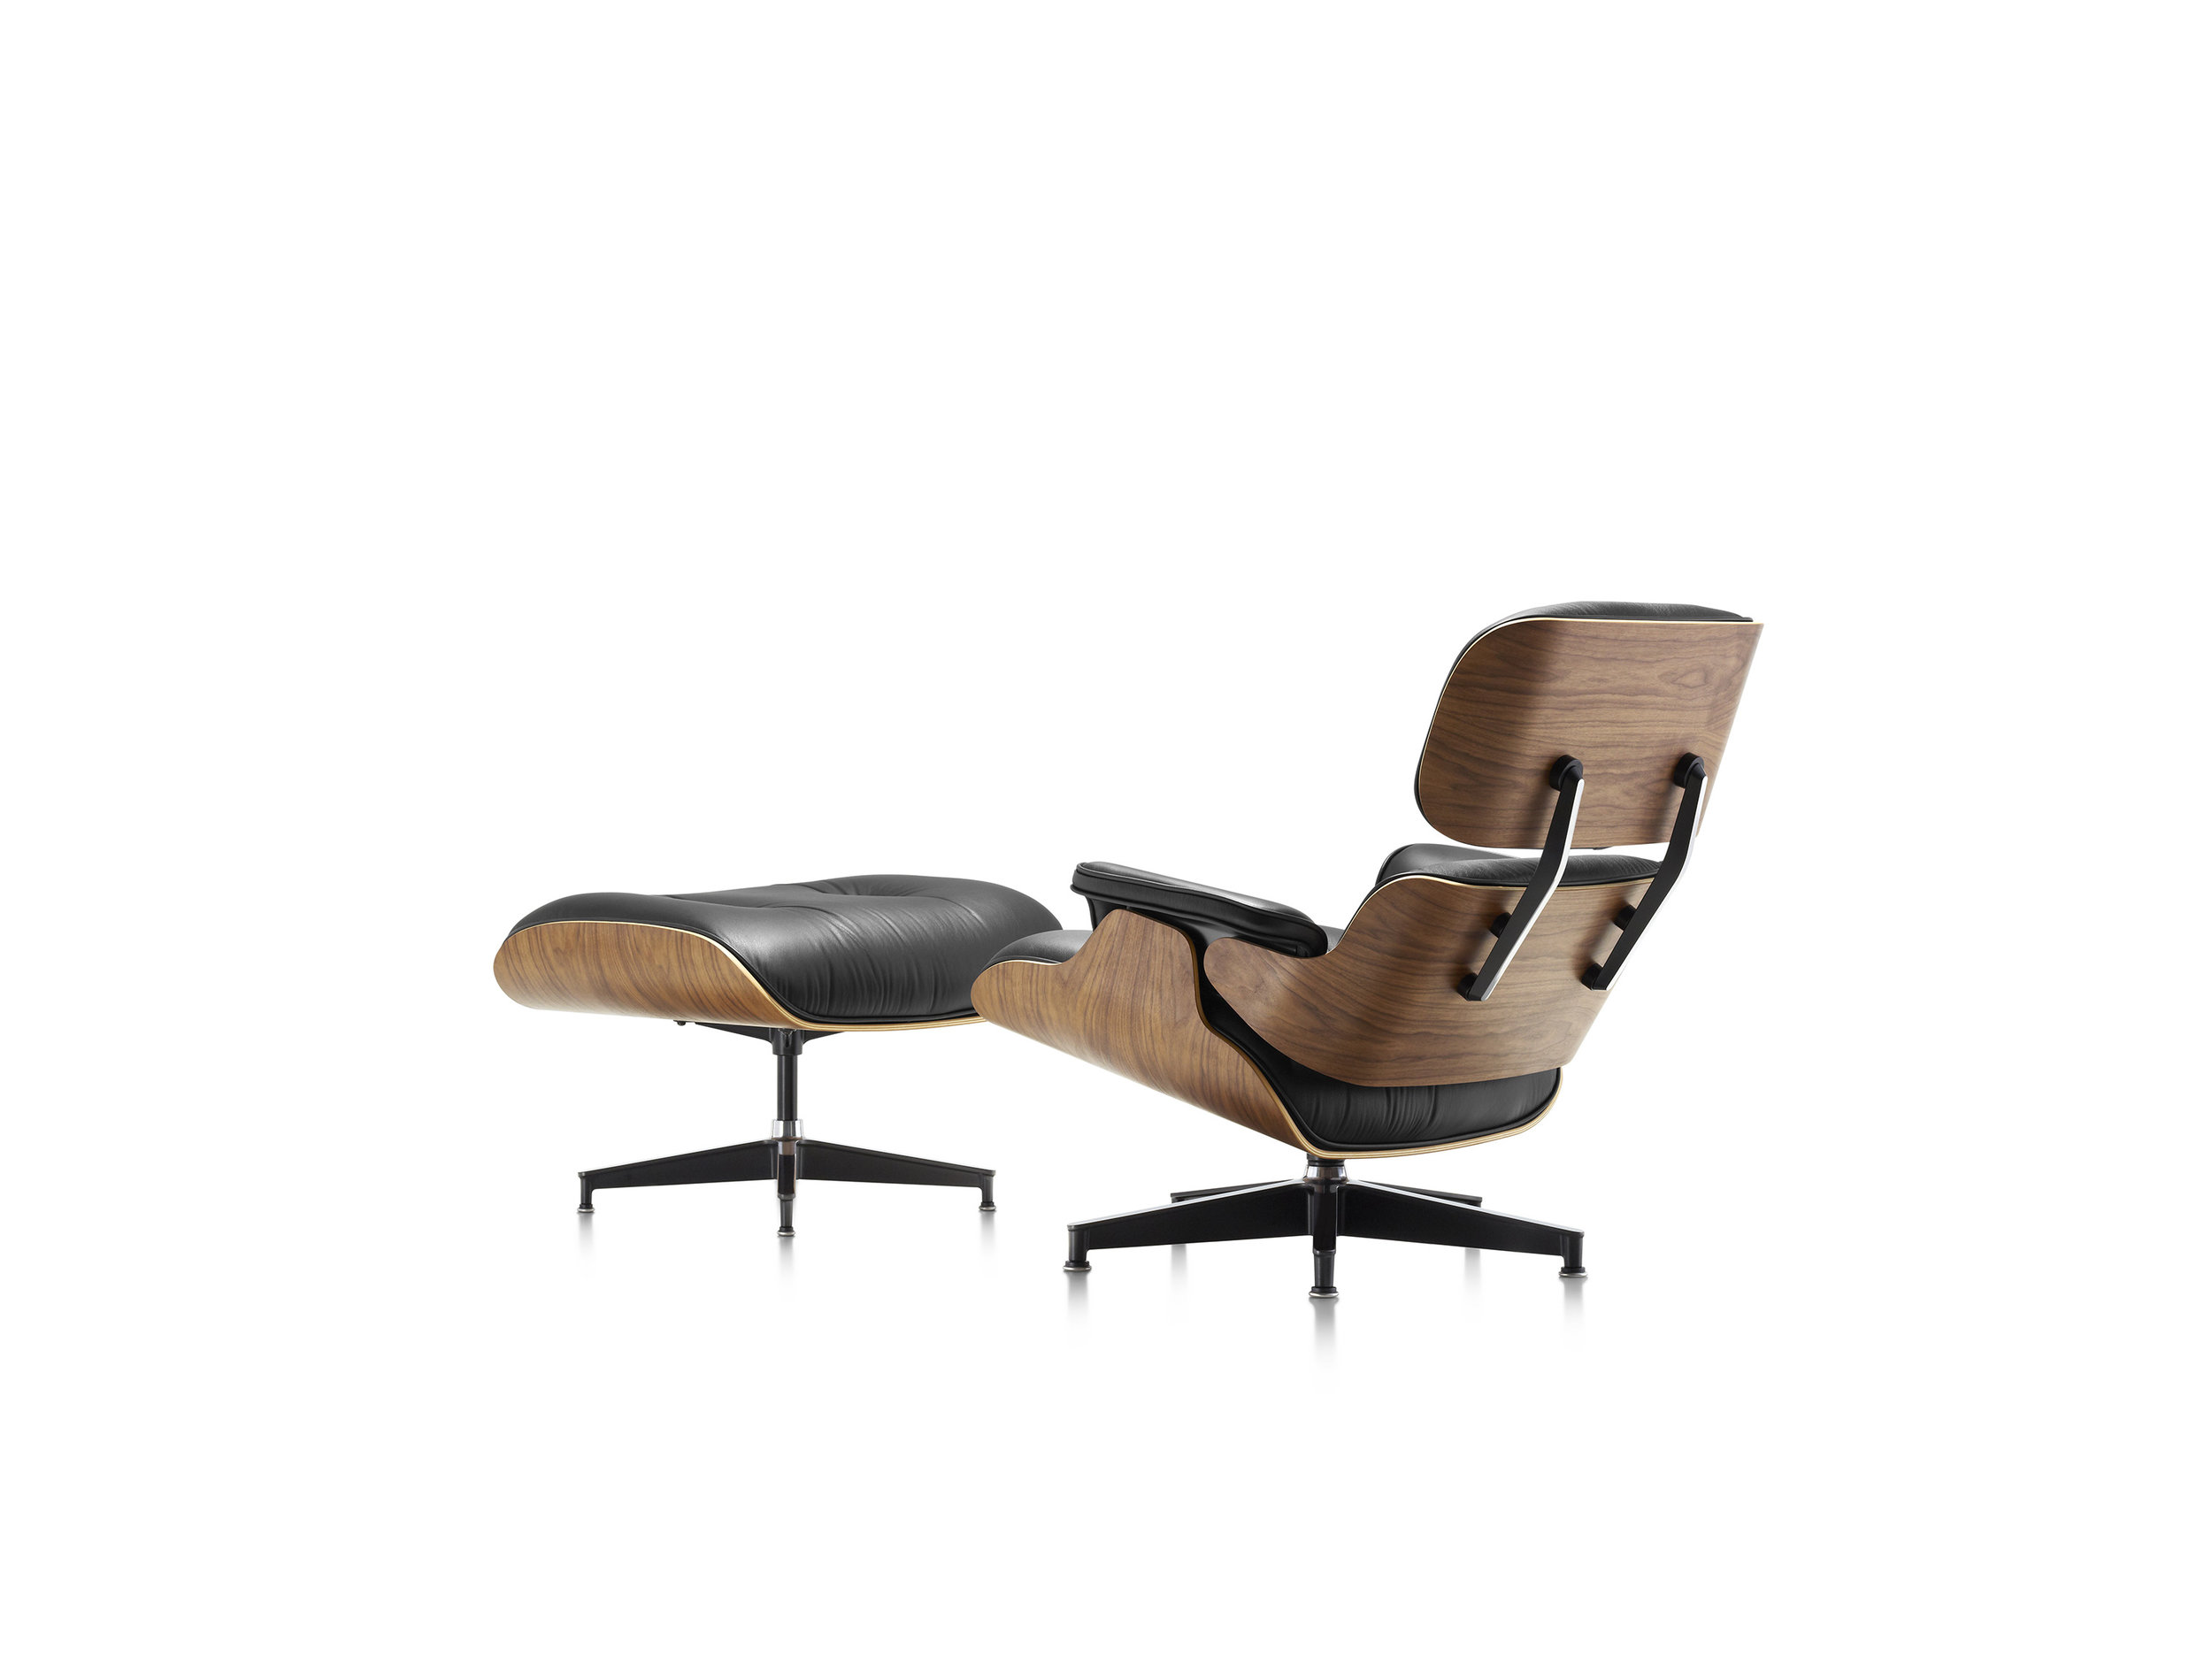 Eames Lounge and Ottoman 2- Walnut and black leather.jpg